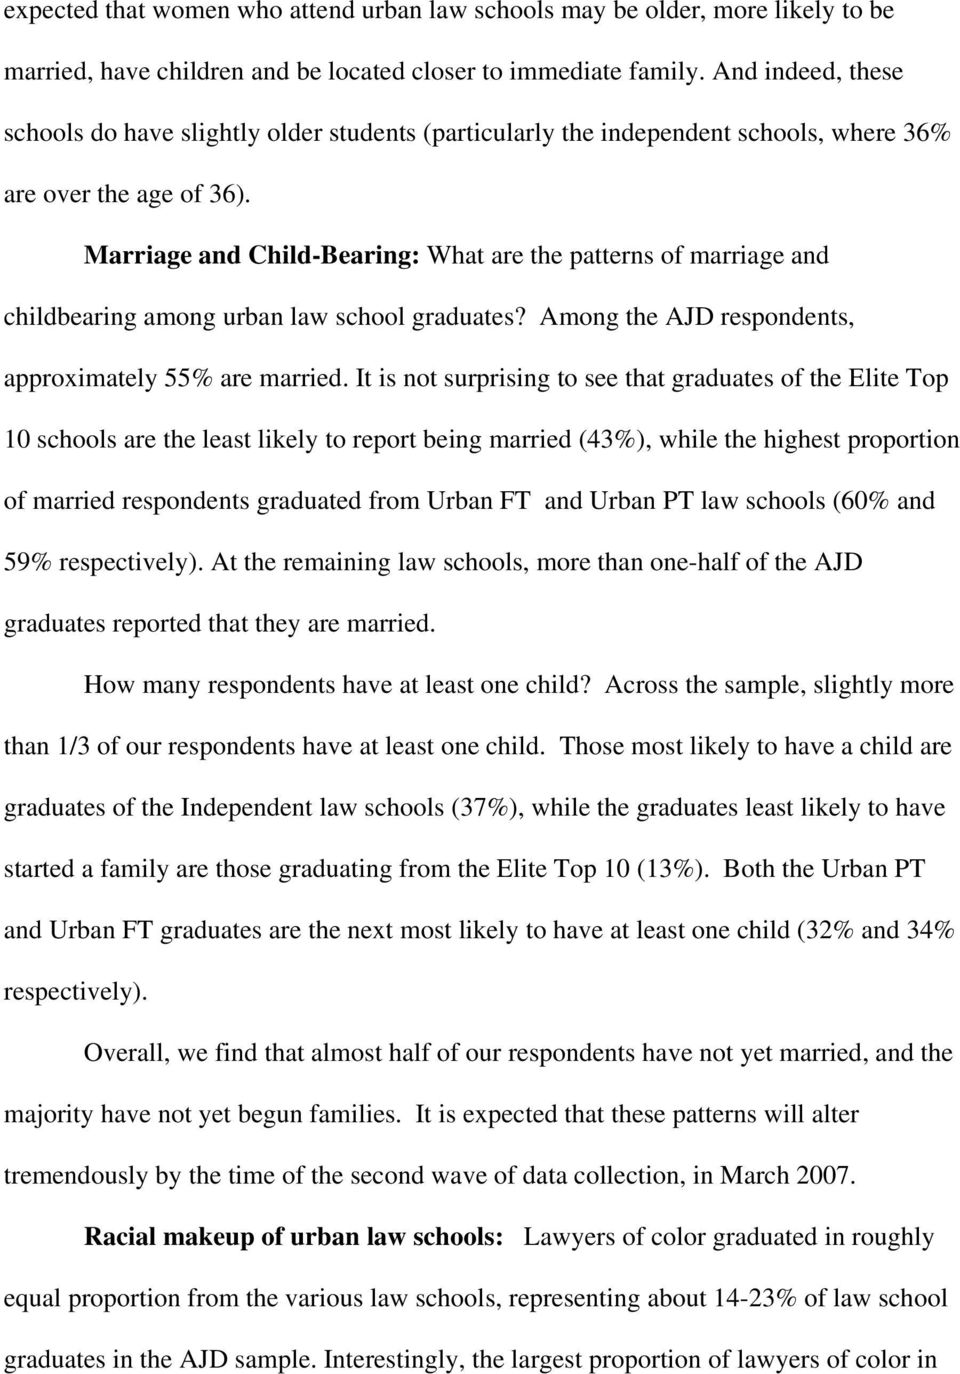 Marriage and Child-Bearing: What are the patterns of marriage and childbearing among urban law school graduates? Among the AJD respondents, approximately 55% are married.